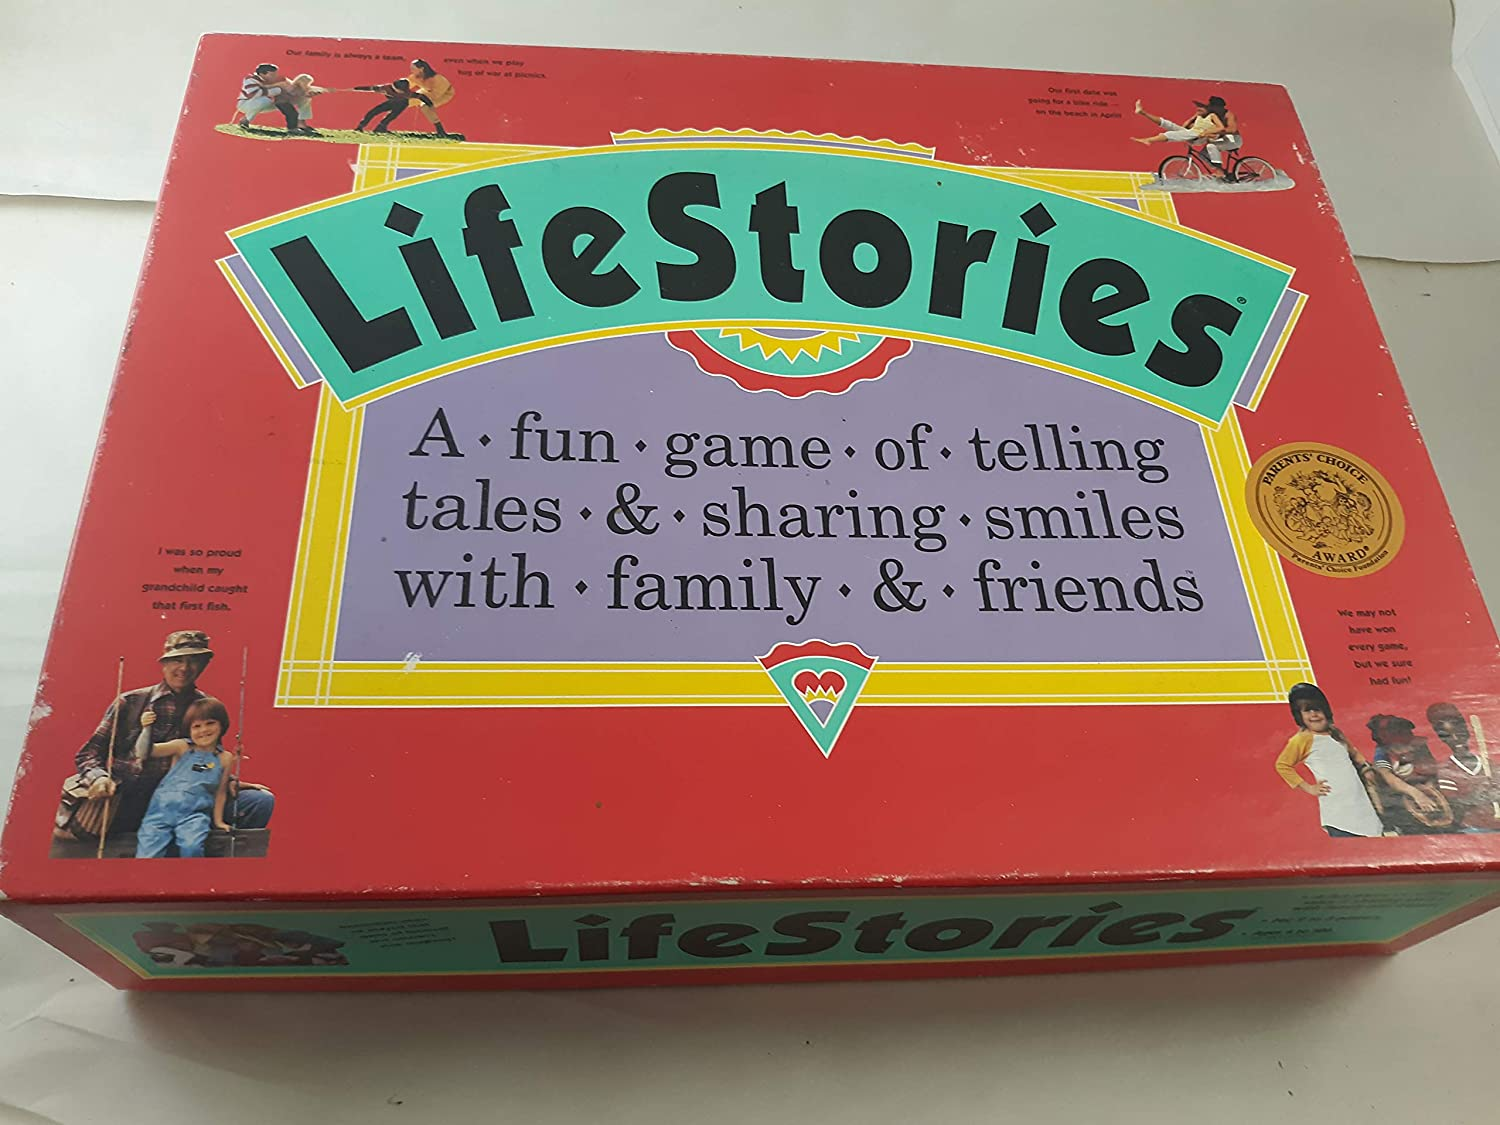 FNDI SG/_B00IBS3F0U/_US 1992 LifeStories; a Fun Game of Telling Tales /& Sharing Smiles with Family /& Friends